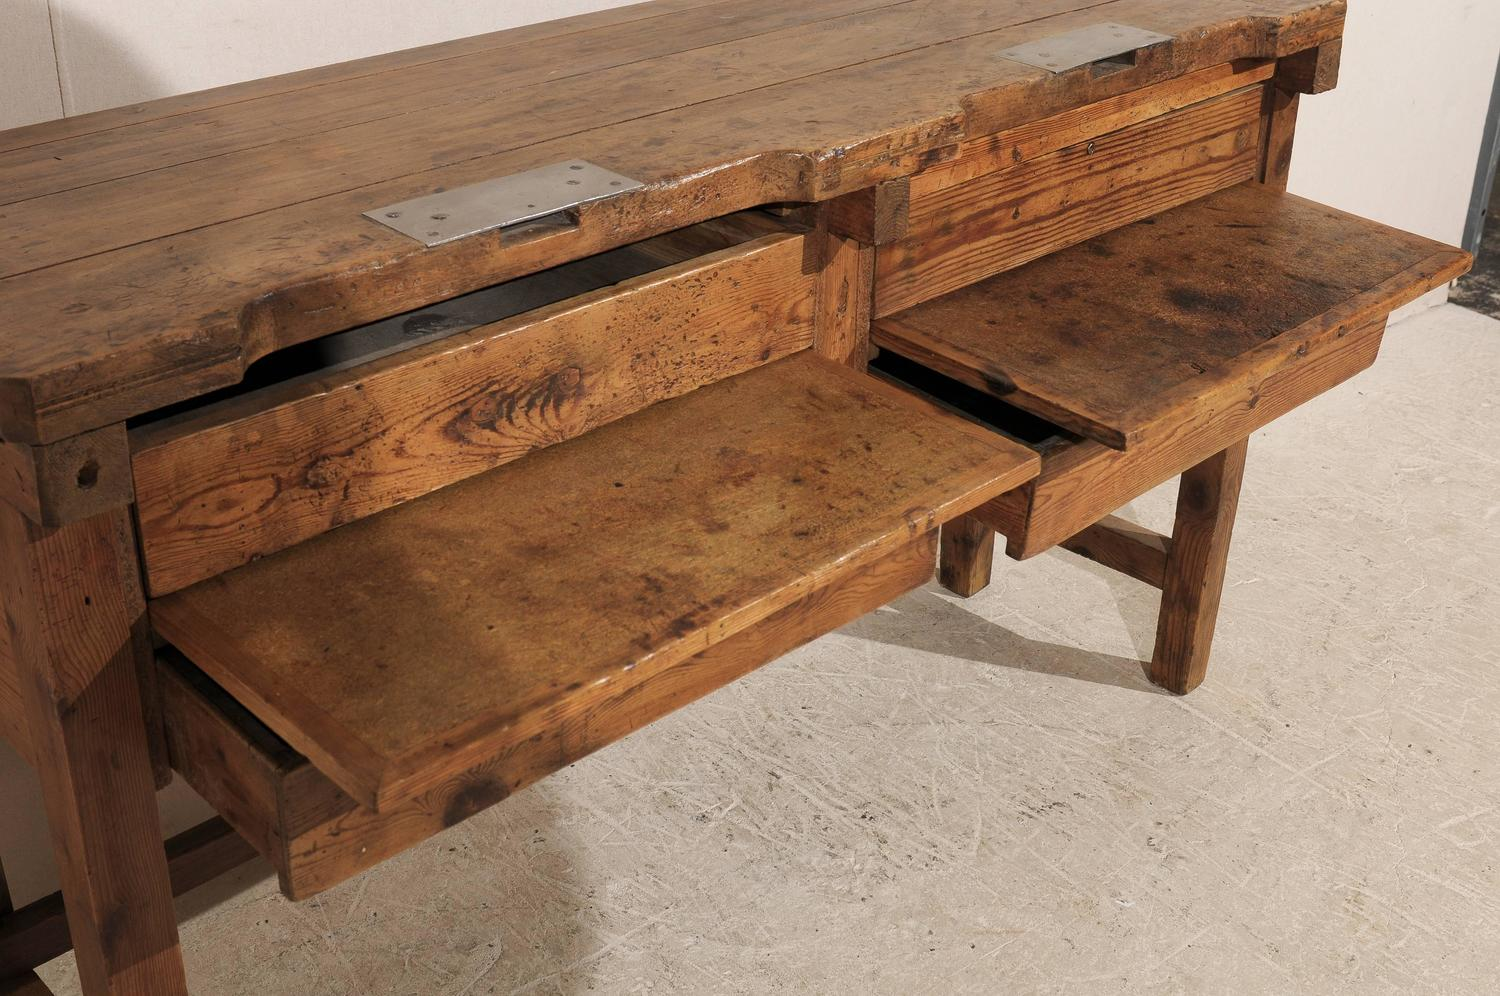 19th century jeweler 39 s table or work bench for sale at 1stdibs. Black Bedroom Furniture Sets. Home Design Ideas